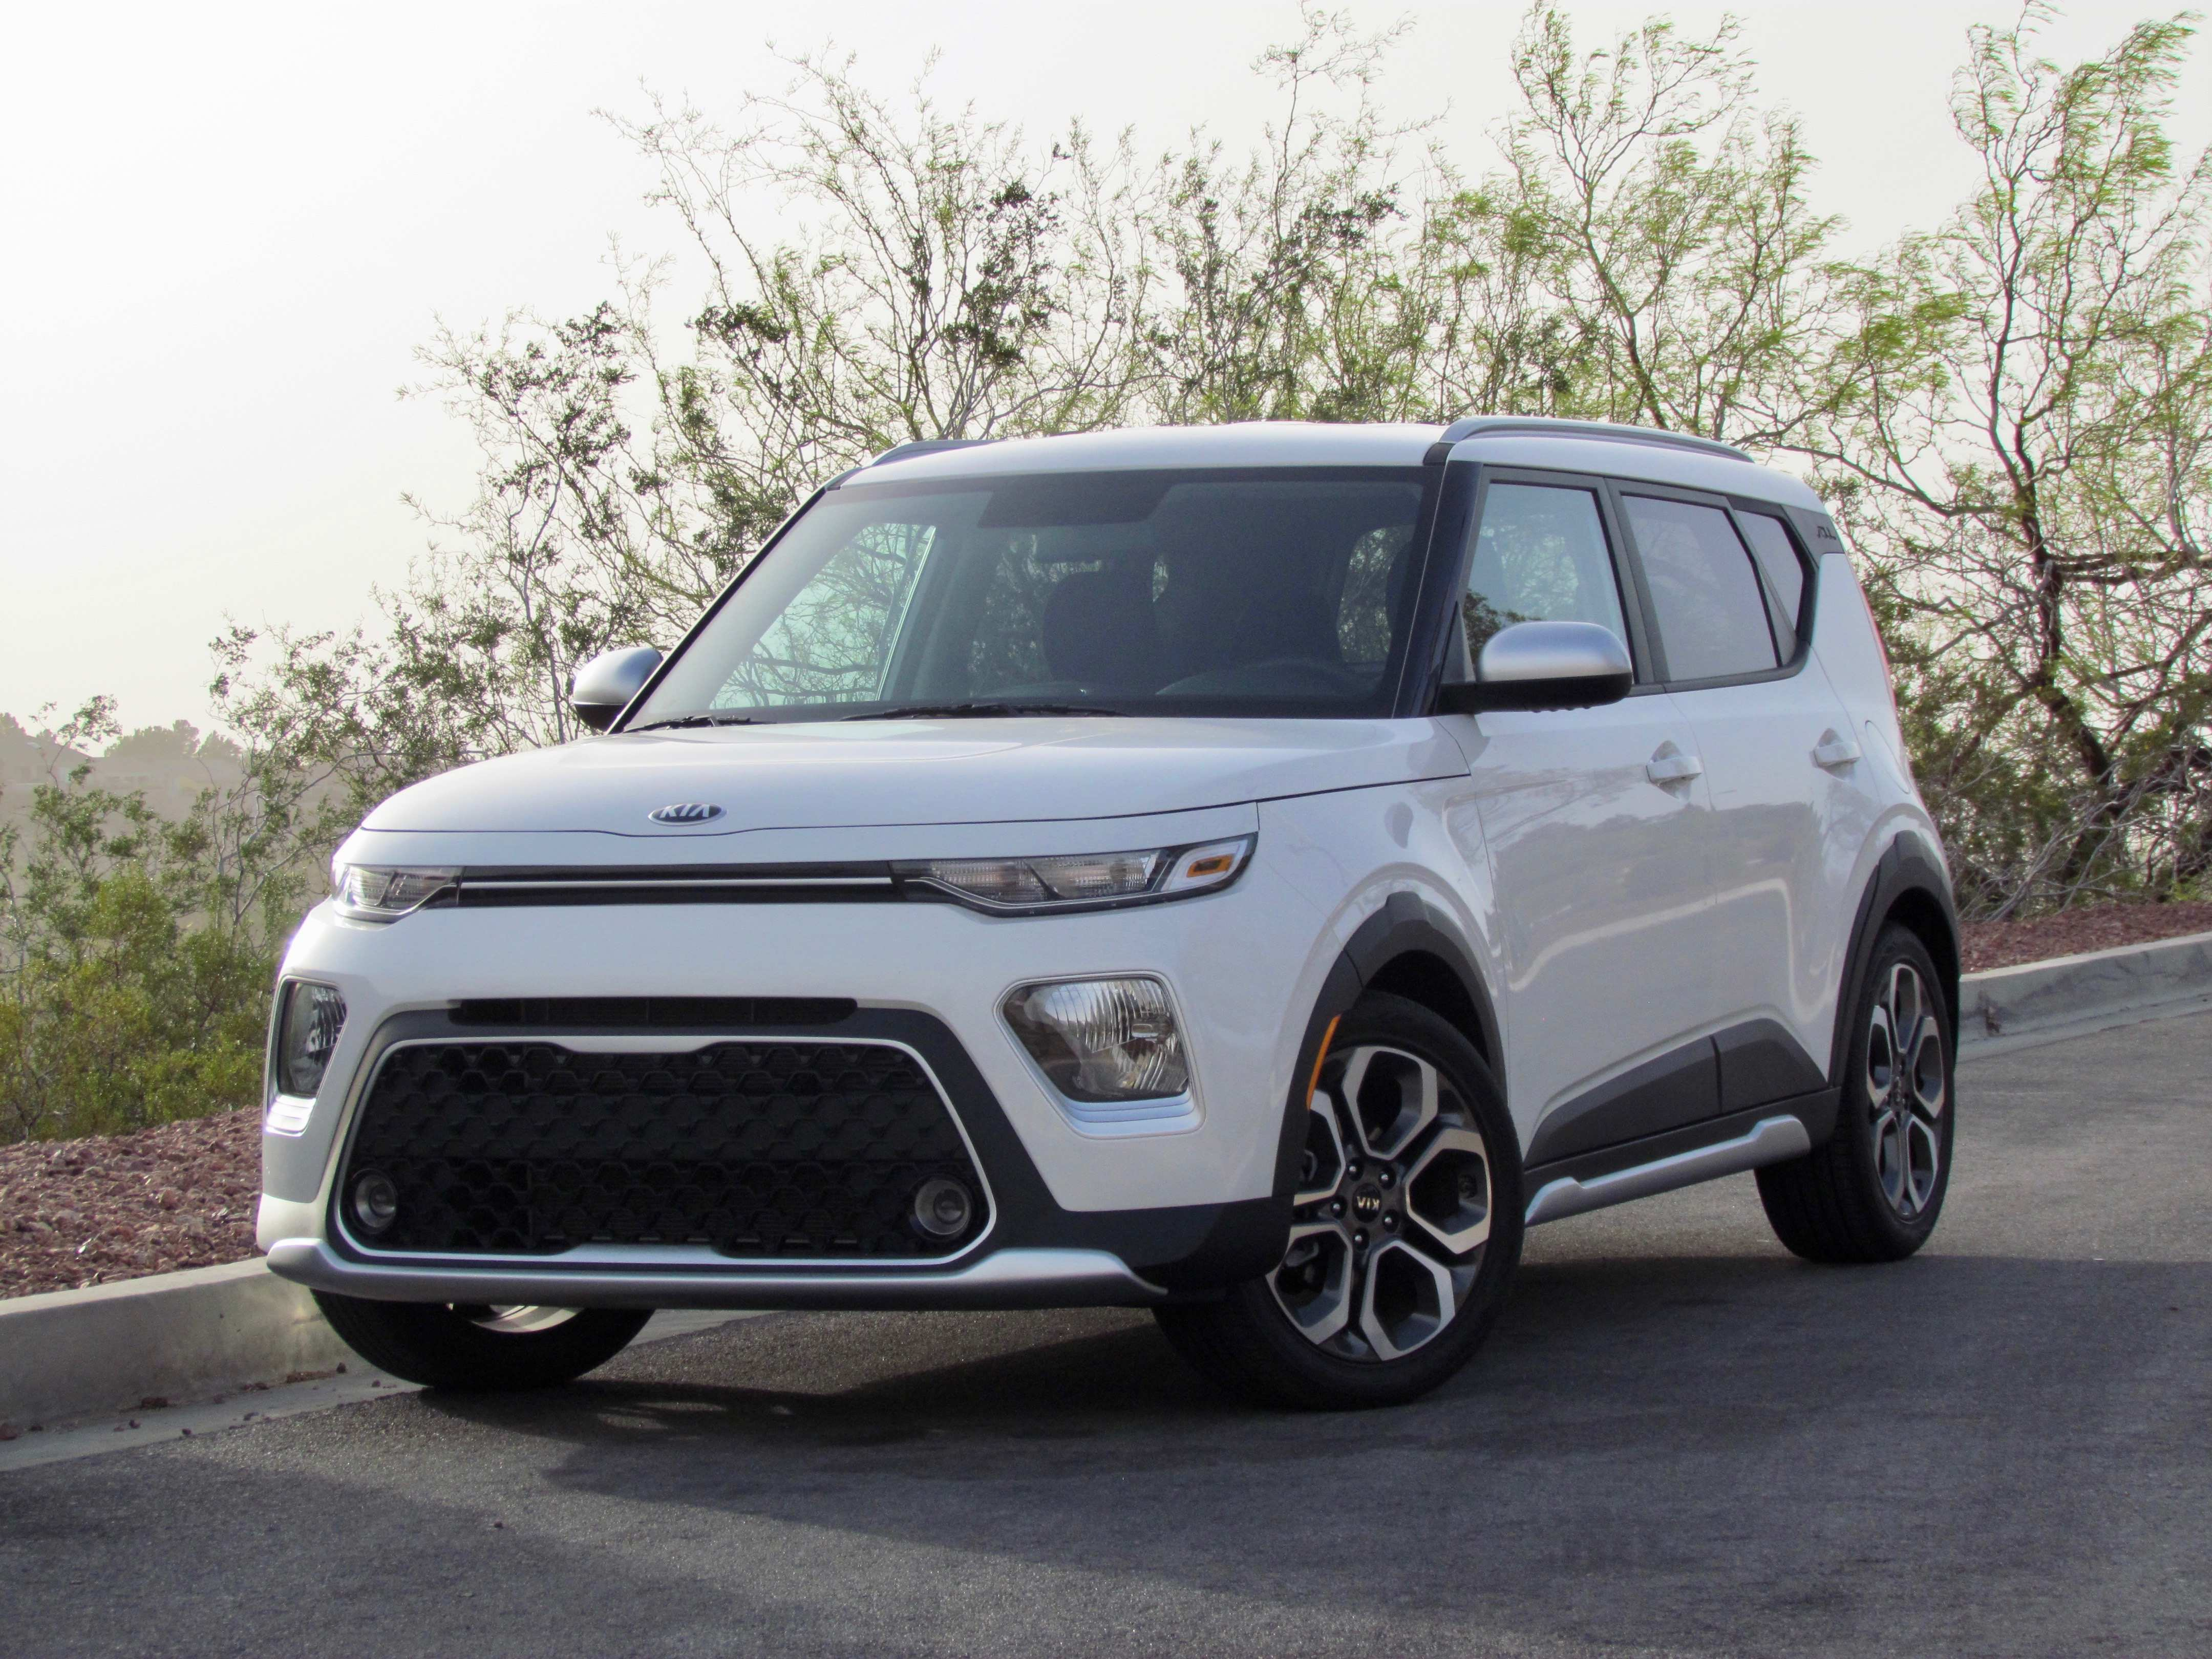 21 All New Kia X Line 2020 Pictures